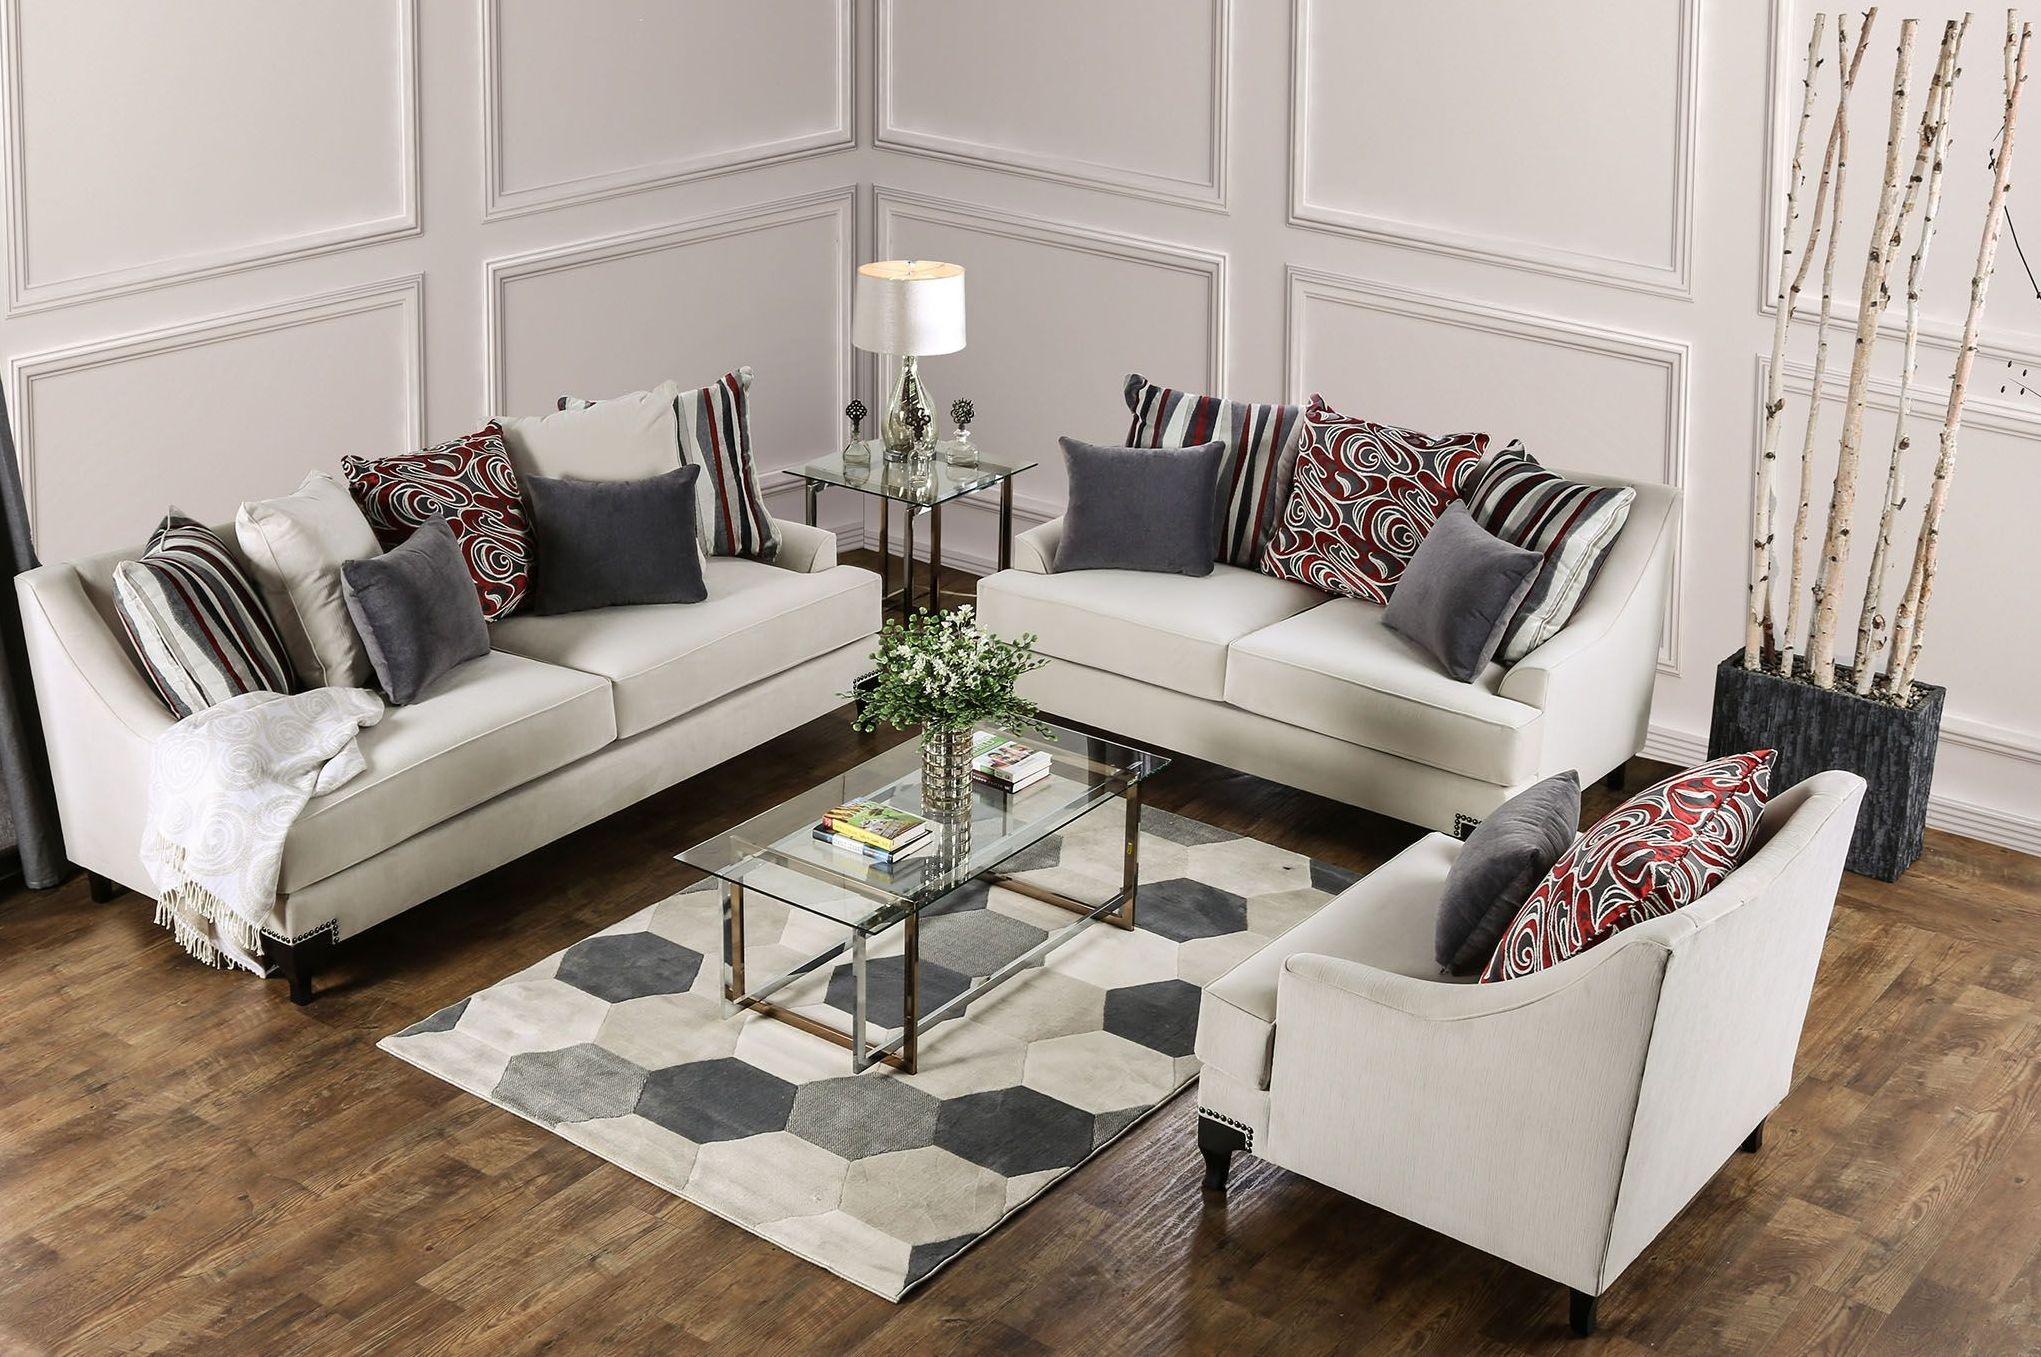 Living Room Furniture Ivory Sofa Viscontti Ivory Upholstered Living Room Set From Furniture